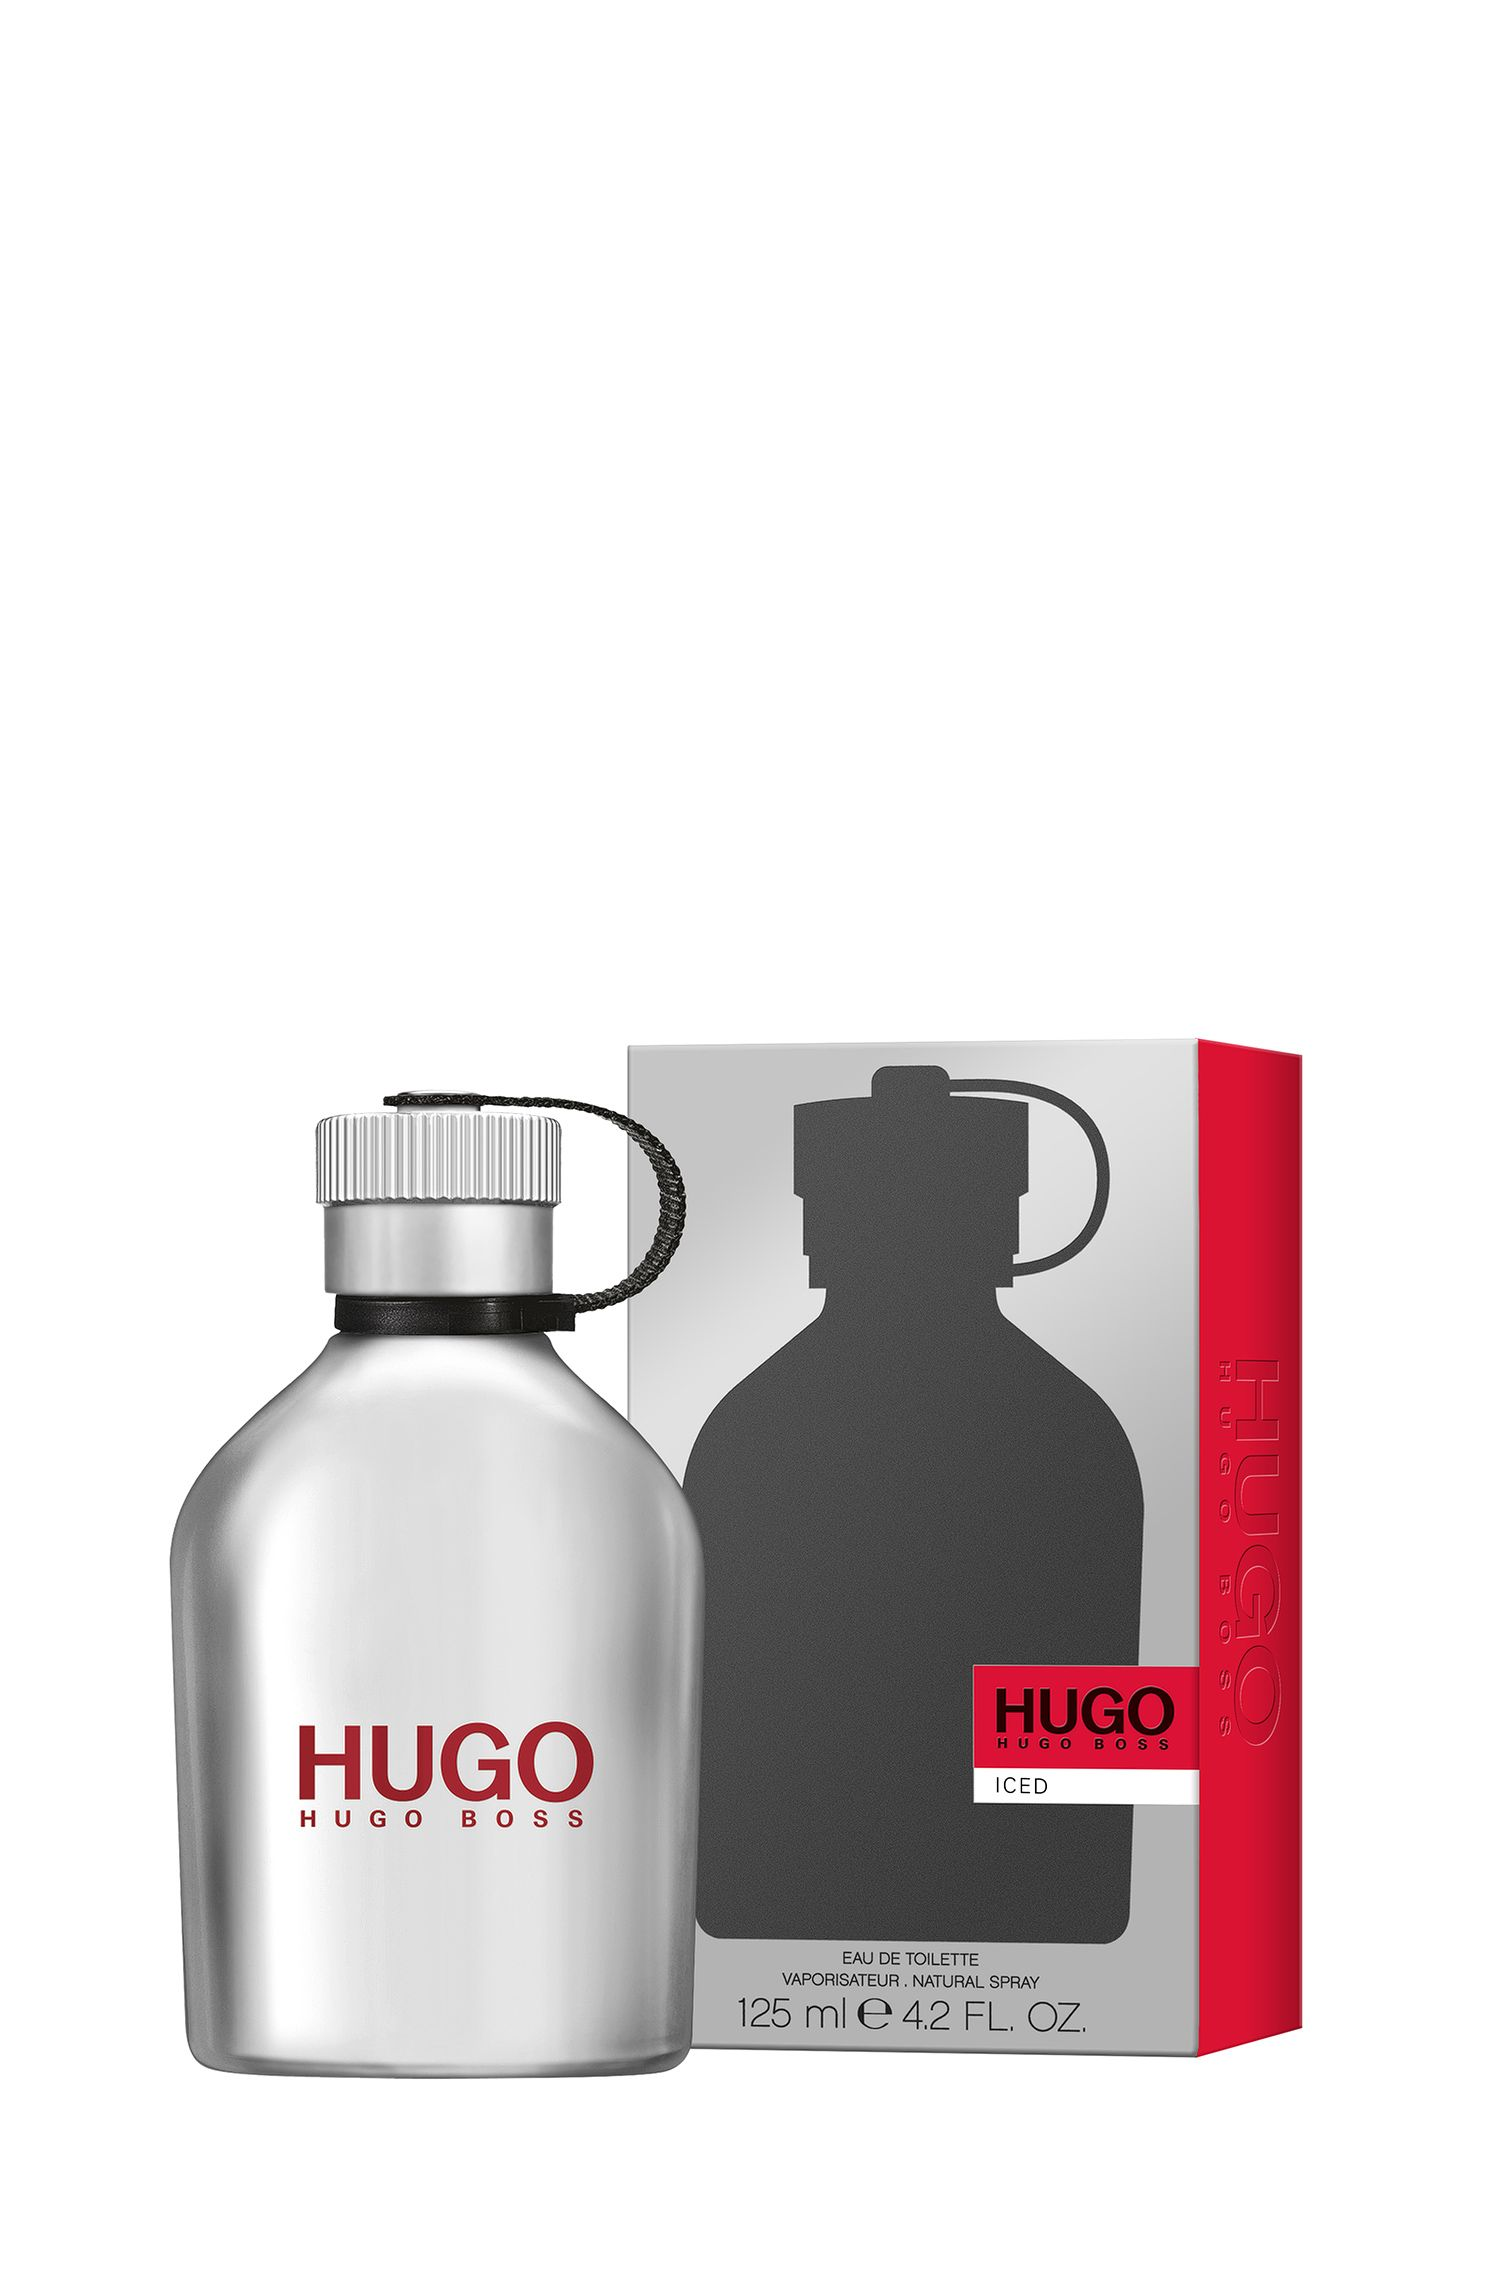 HUGO Iced-eau de toilette 125 ml